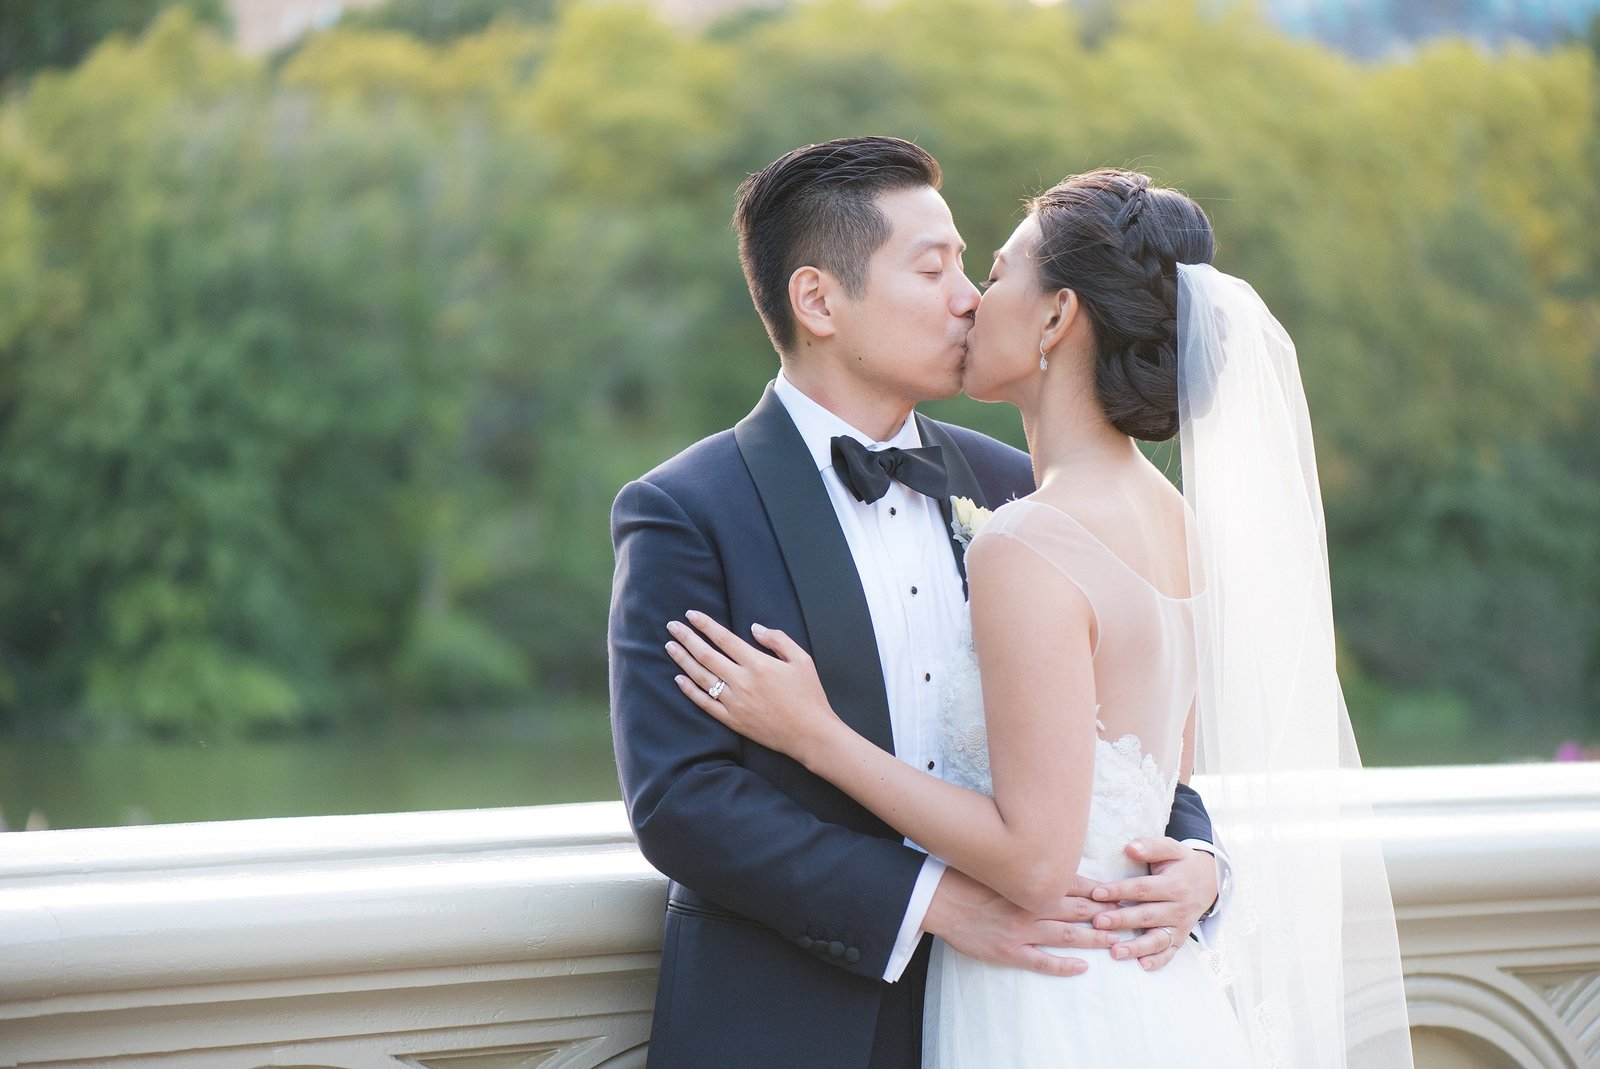 Asian Bride and Groom Kissing on Bow Bridge in Central Park, New York City Photo